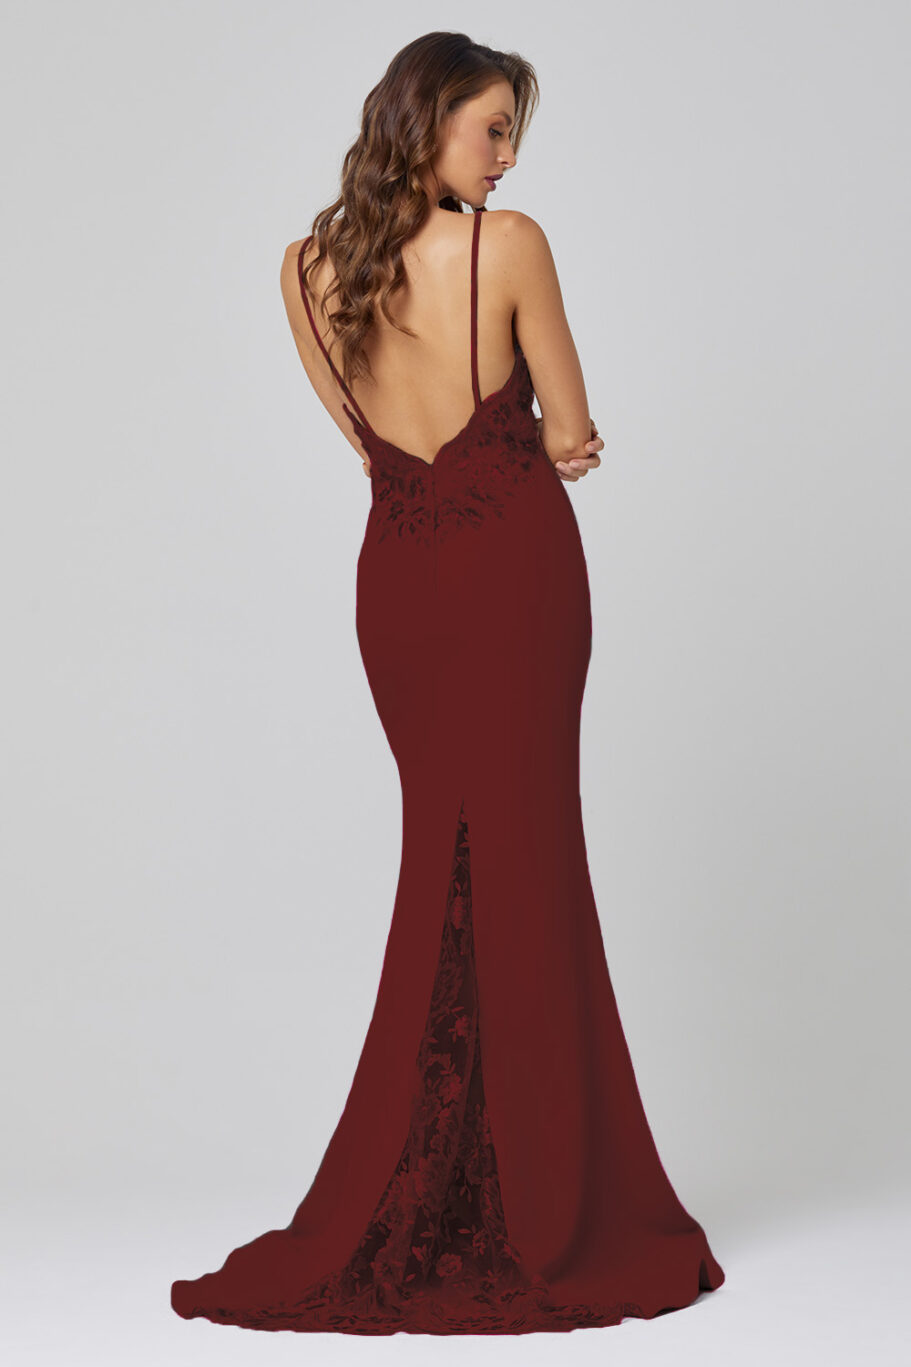 Pippa Low Back Sequin Lace Formal Dress -PO888 wine